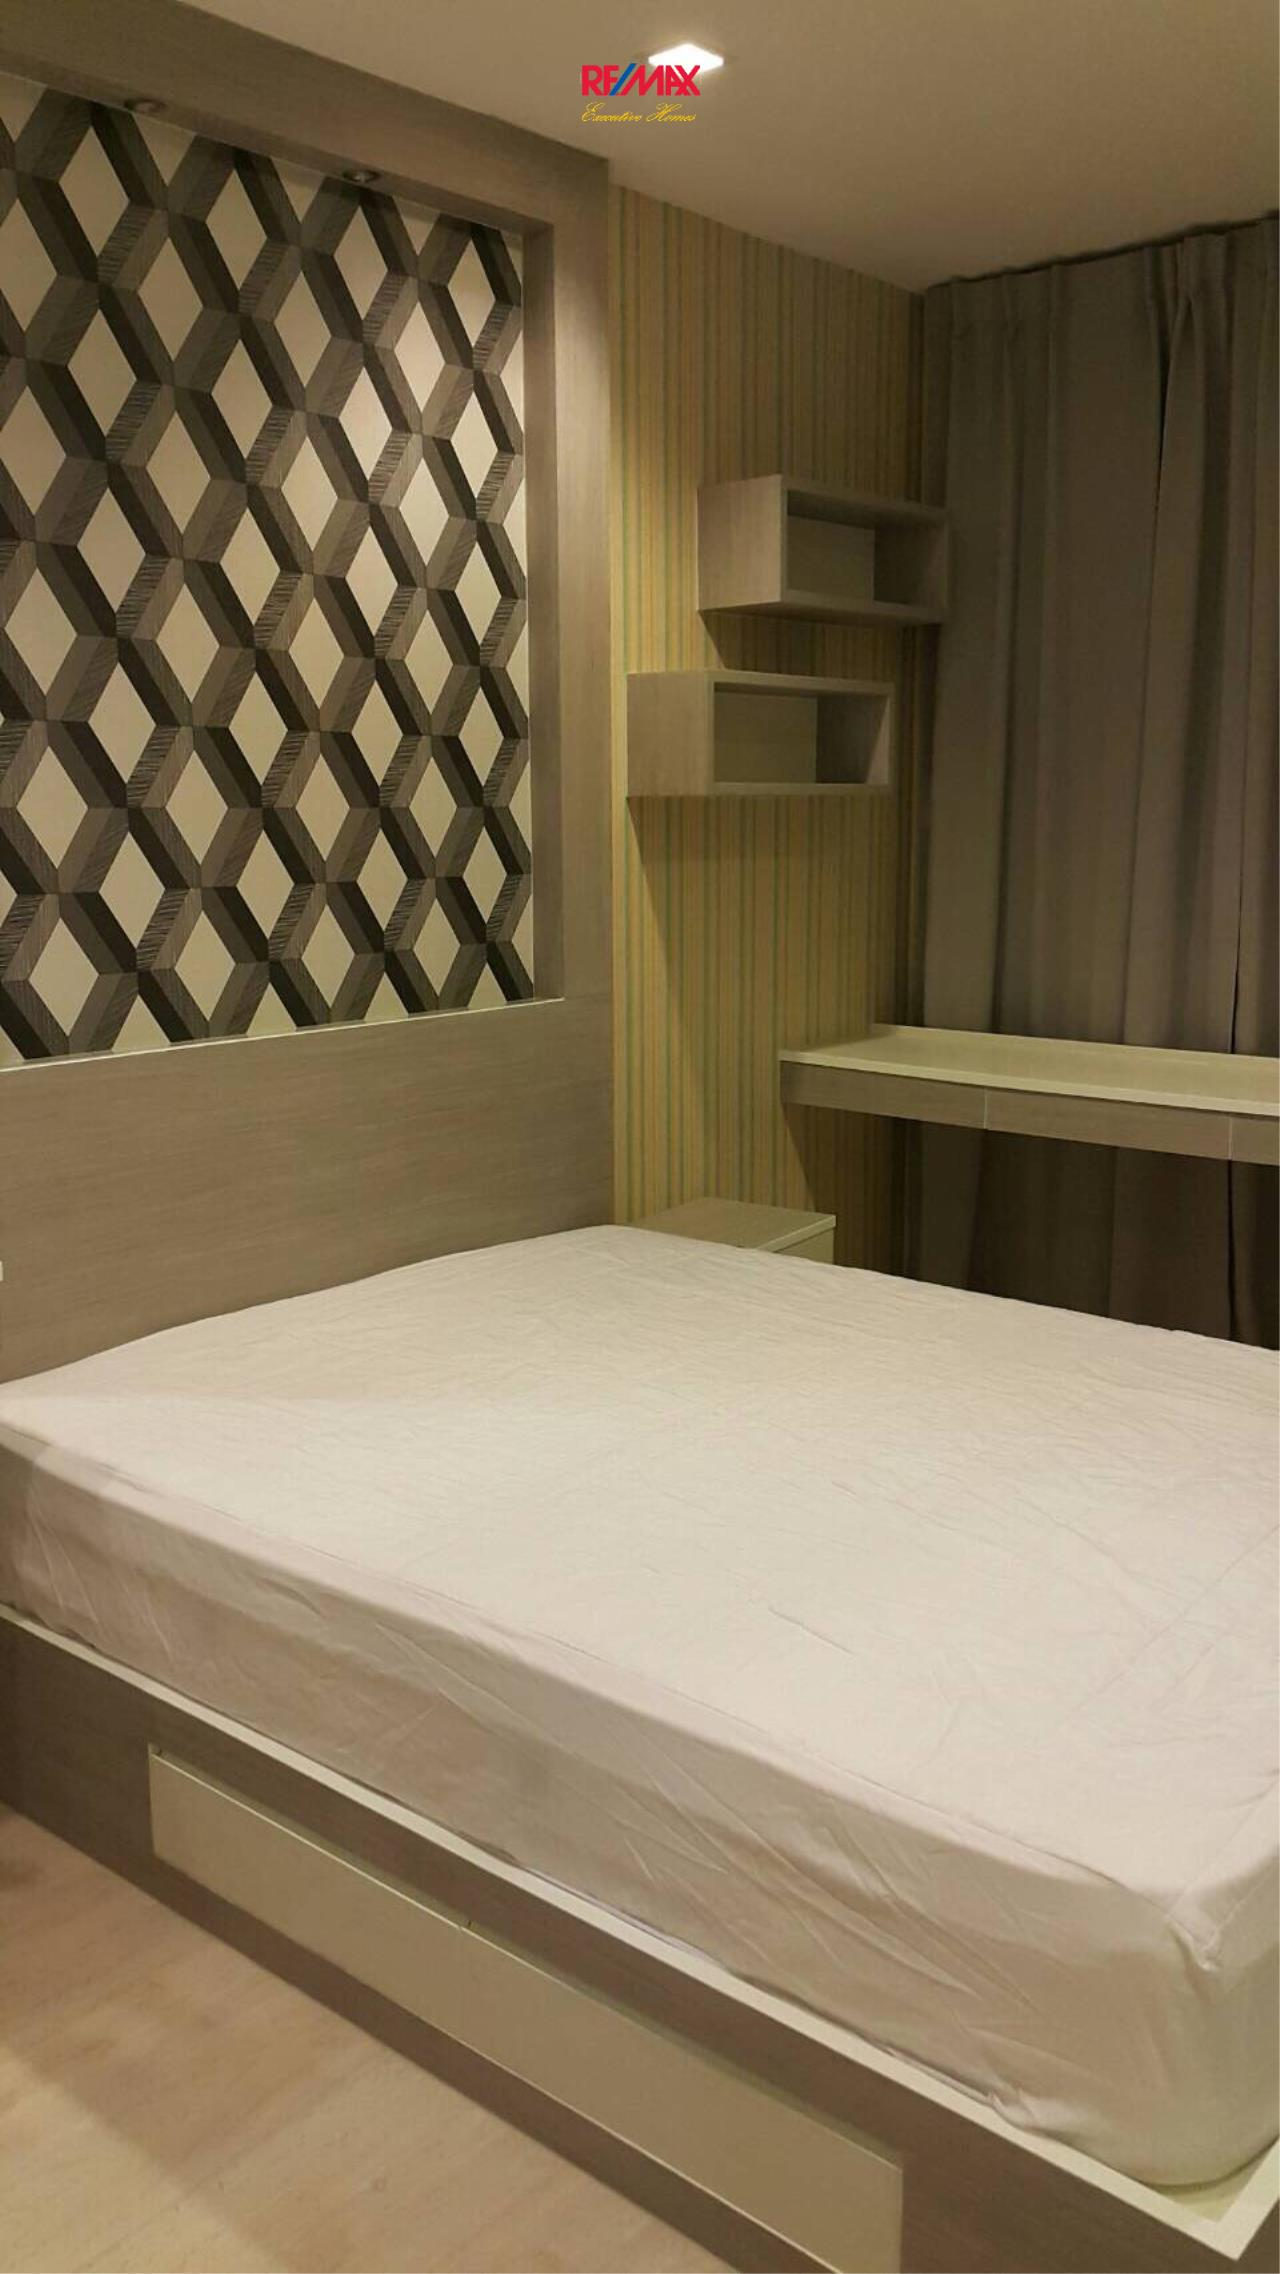 RE/MAX Executive Homes Agency's Nice 1 Bedroom for Rent Ideo Mobi Sathorn 3